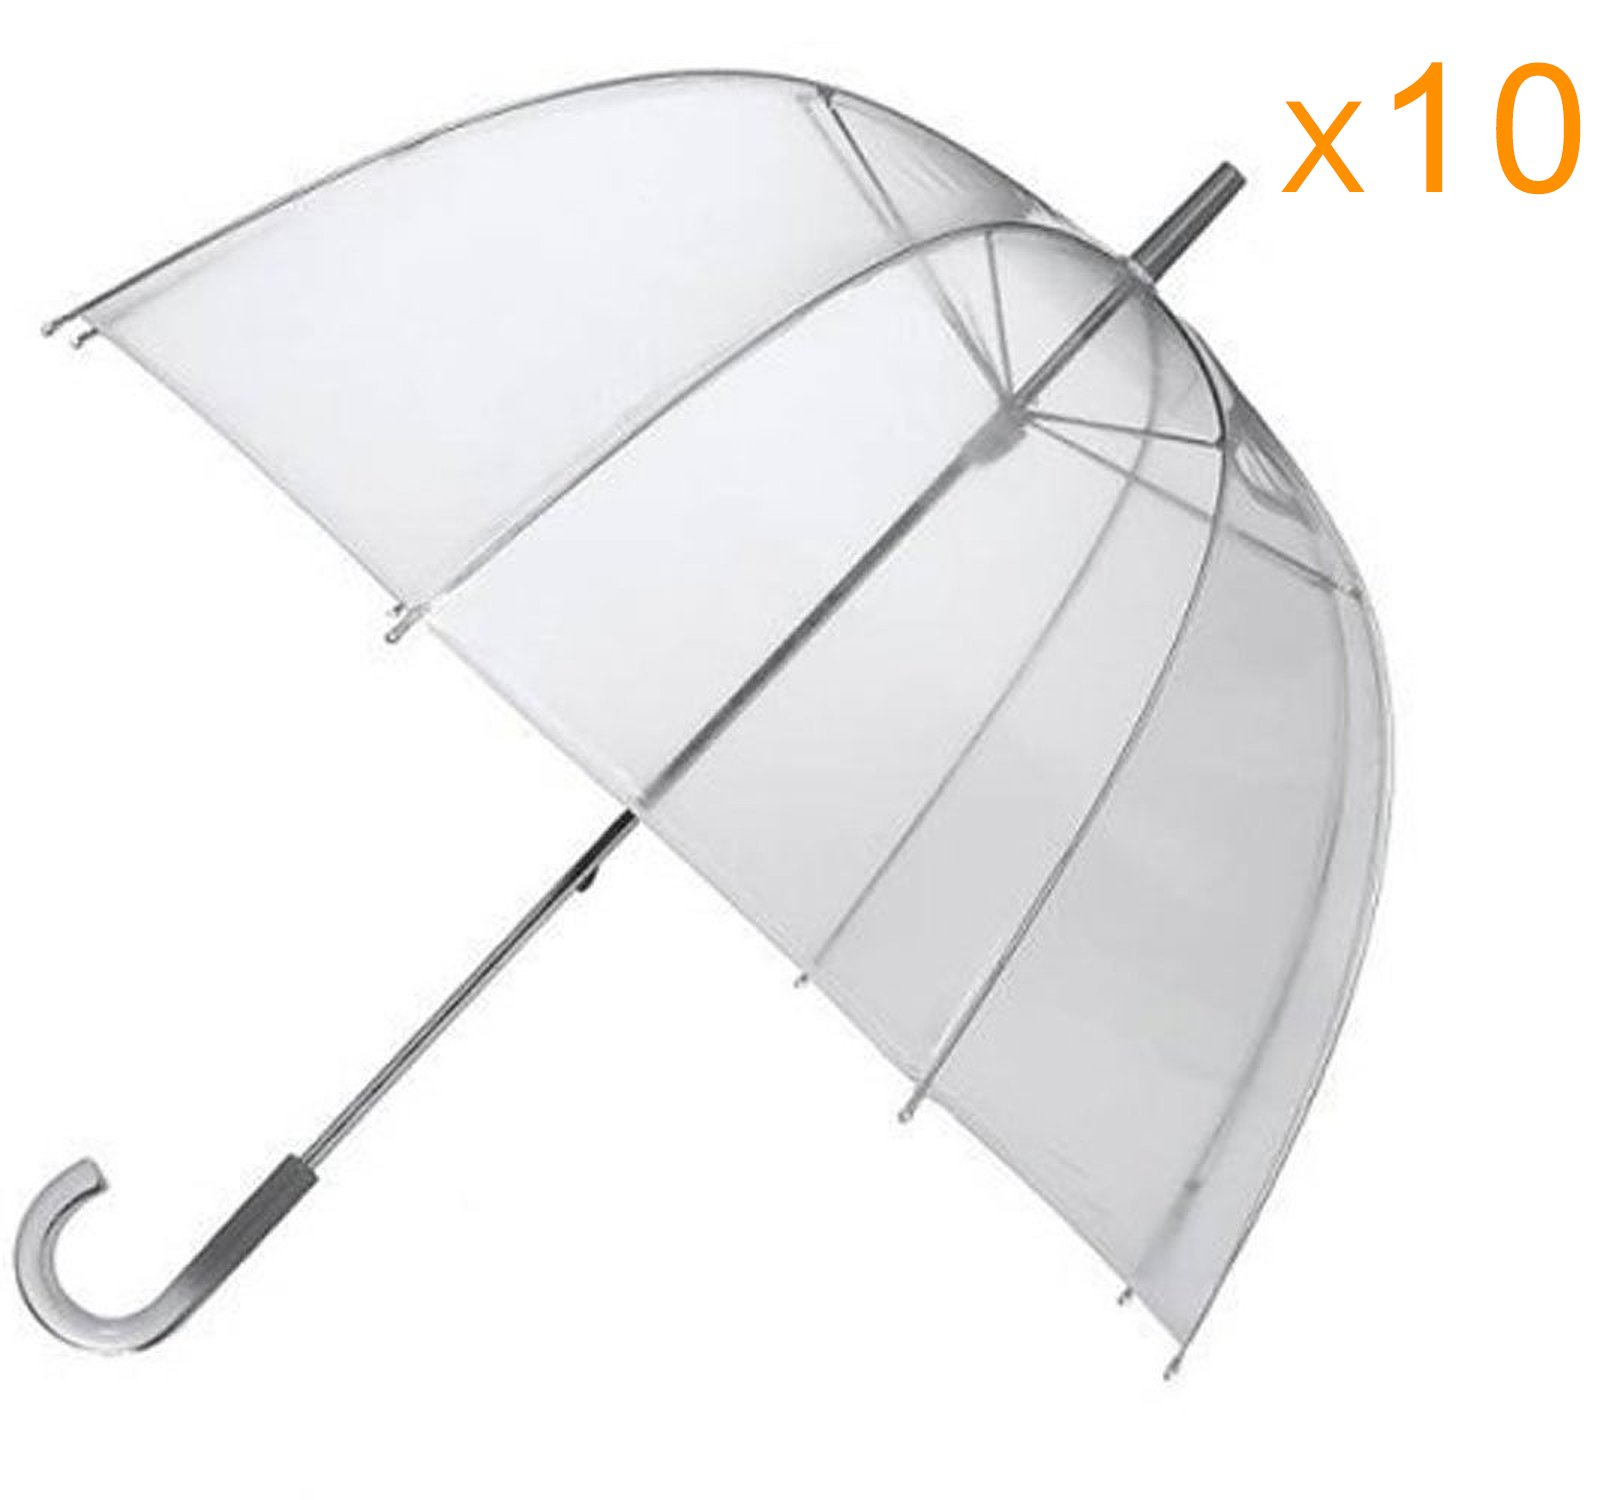 46'' Clear Dome/Bubble Umbrellas - Pack of 10 - Perfect for Weddings and Events by EZbrella